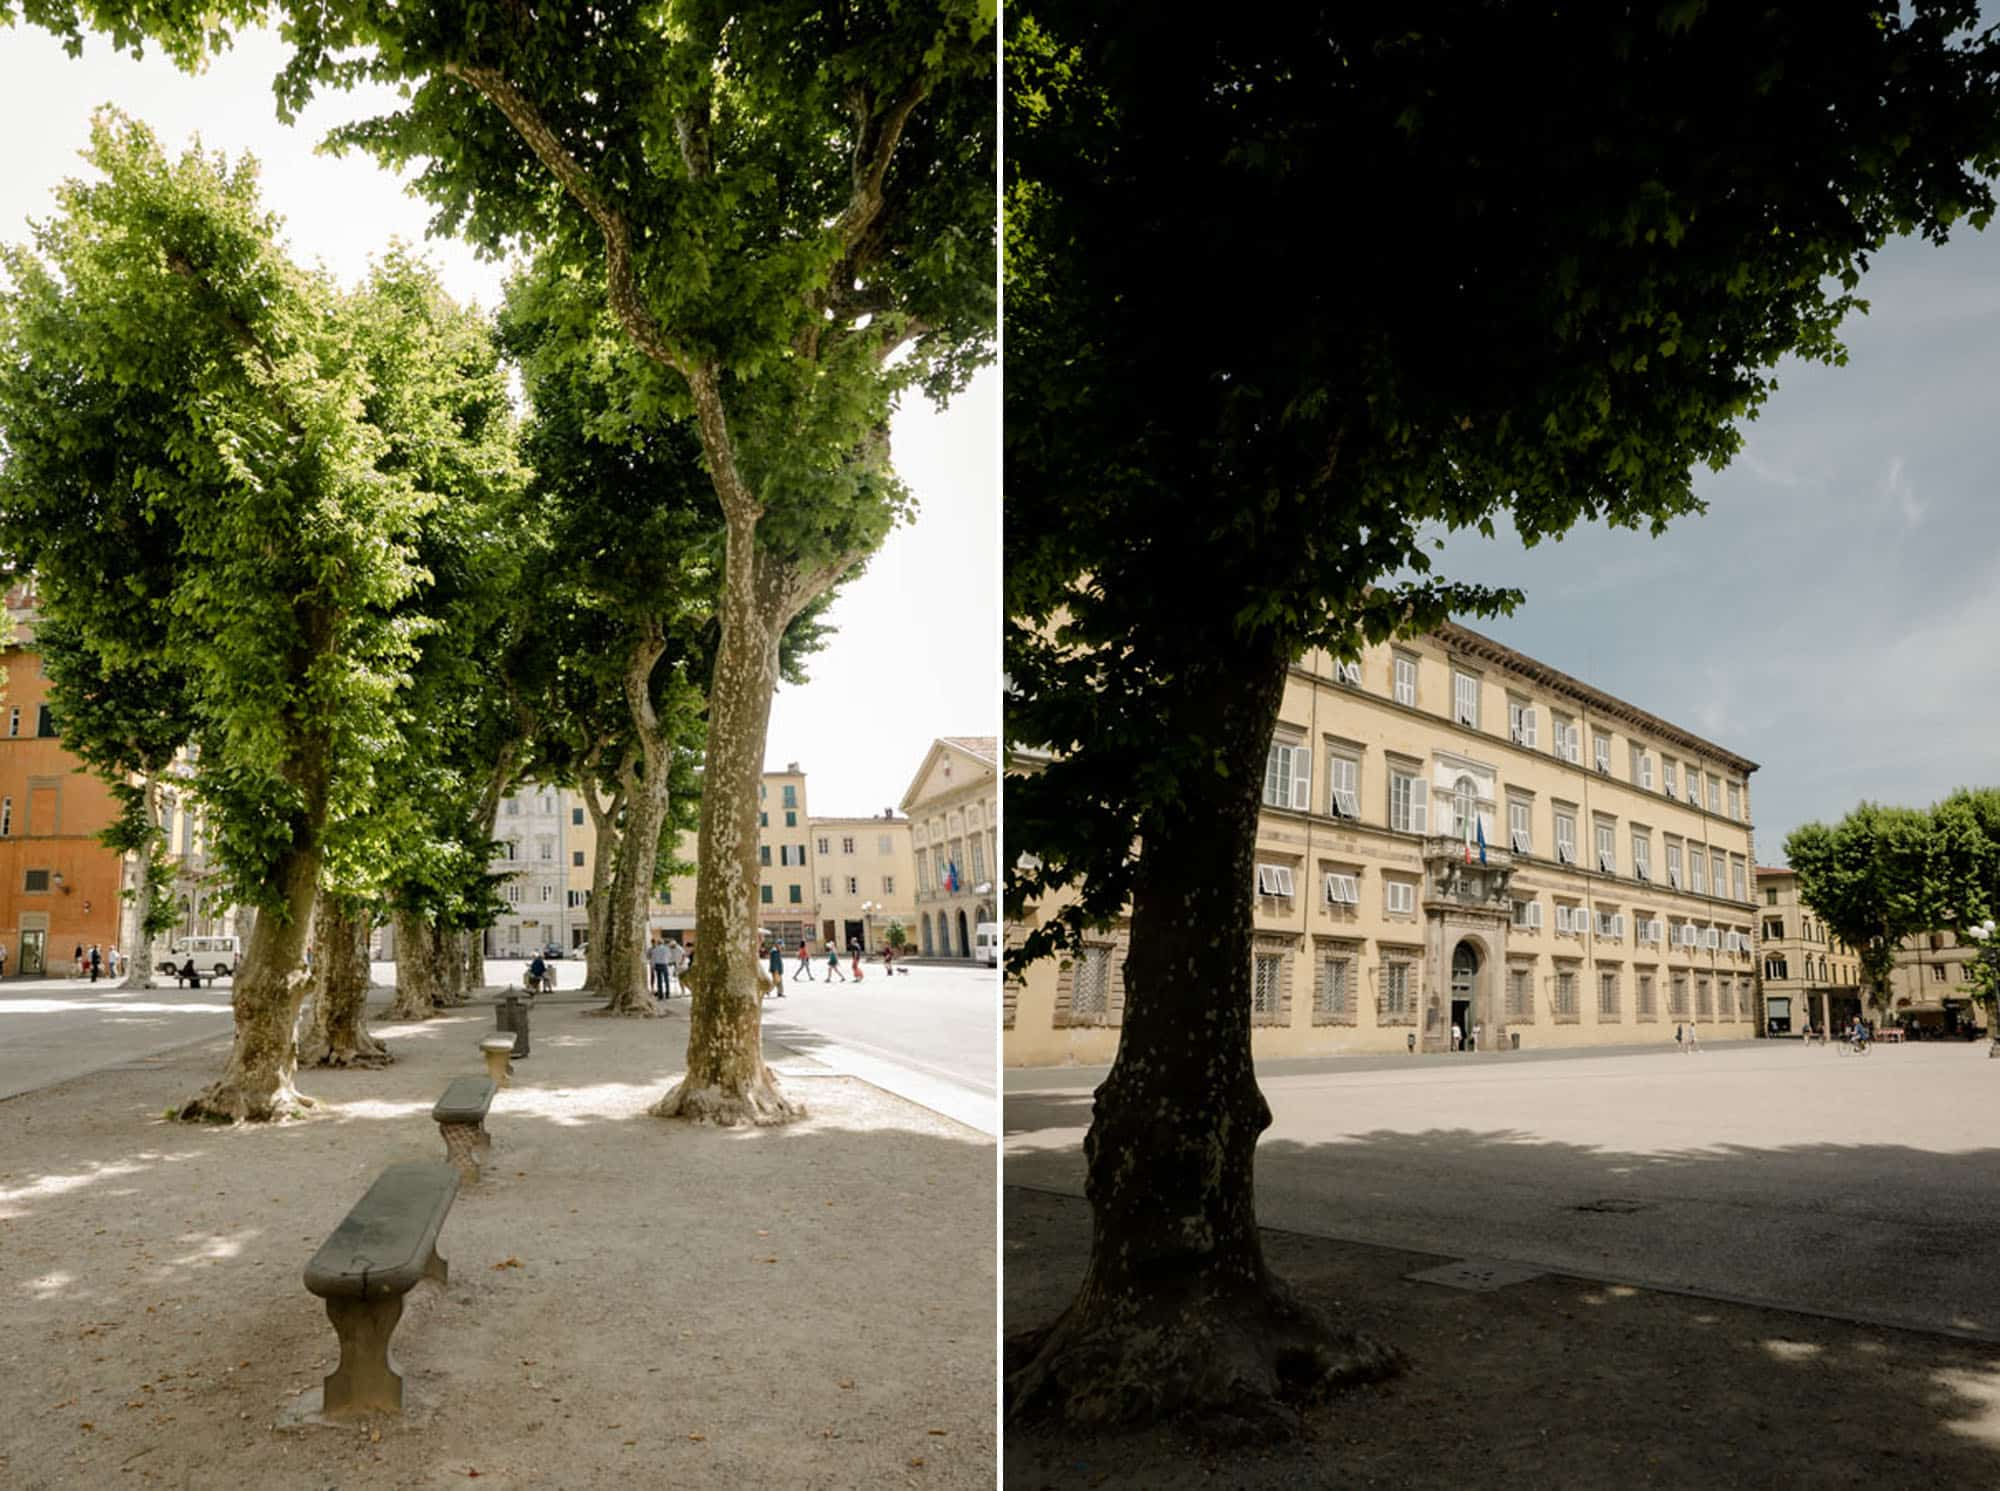 Nice trees in Piazza Napoleone in Lucca